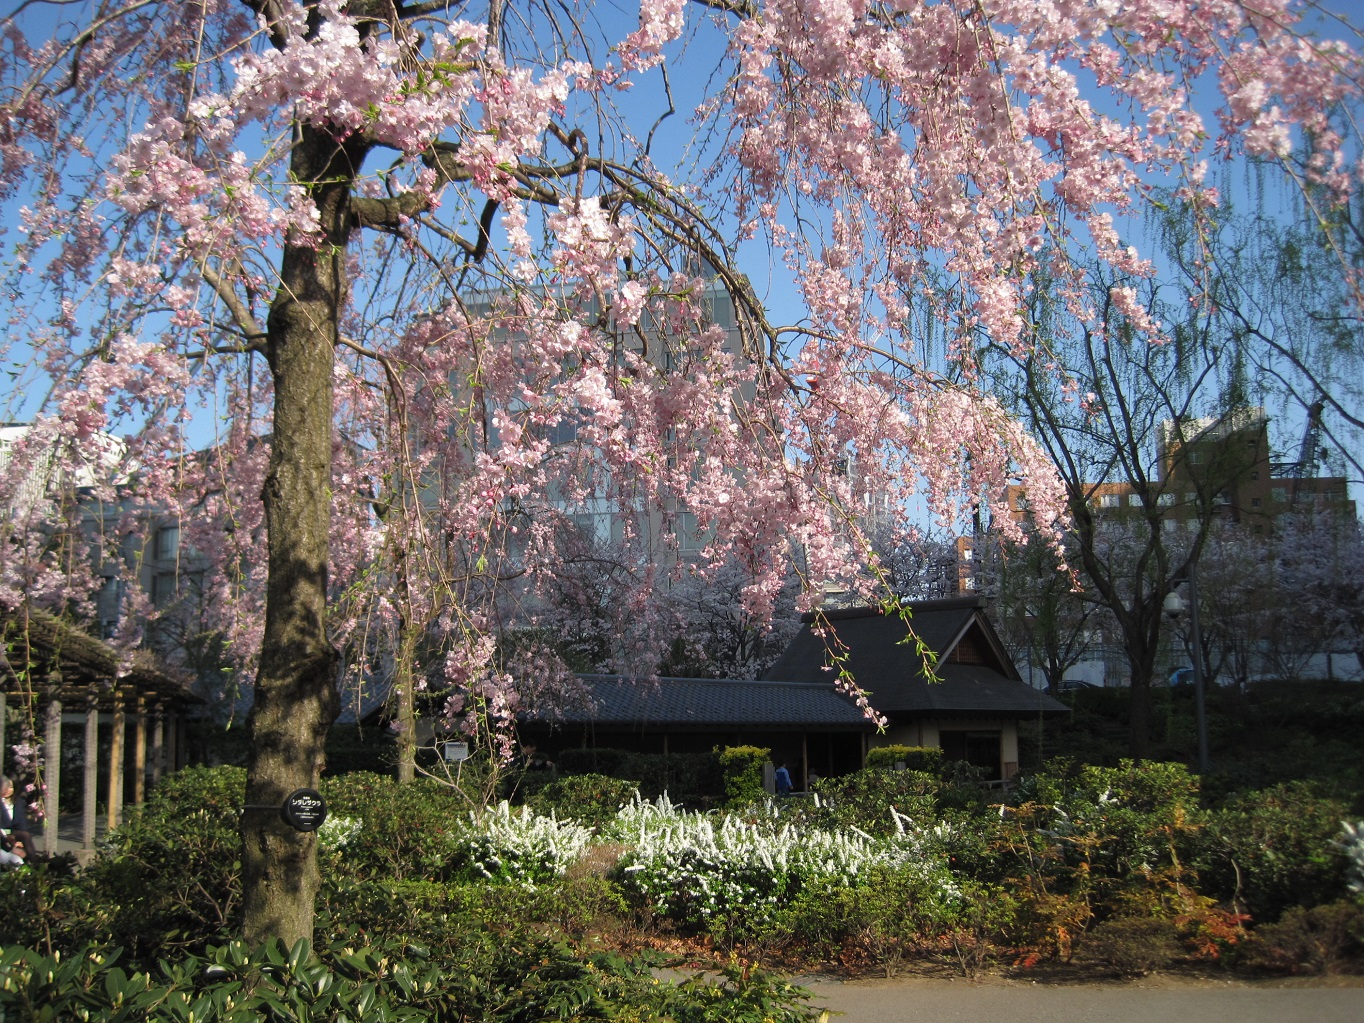 Cherry blossoms: Hinokicho Park & Tokyo Midtown (article by amuzen)